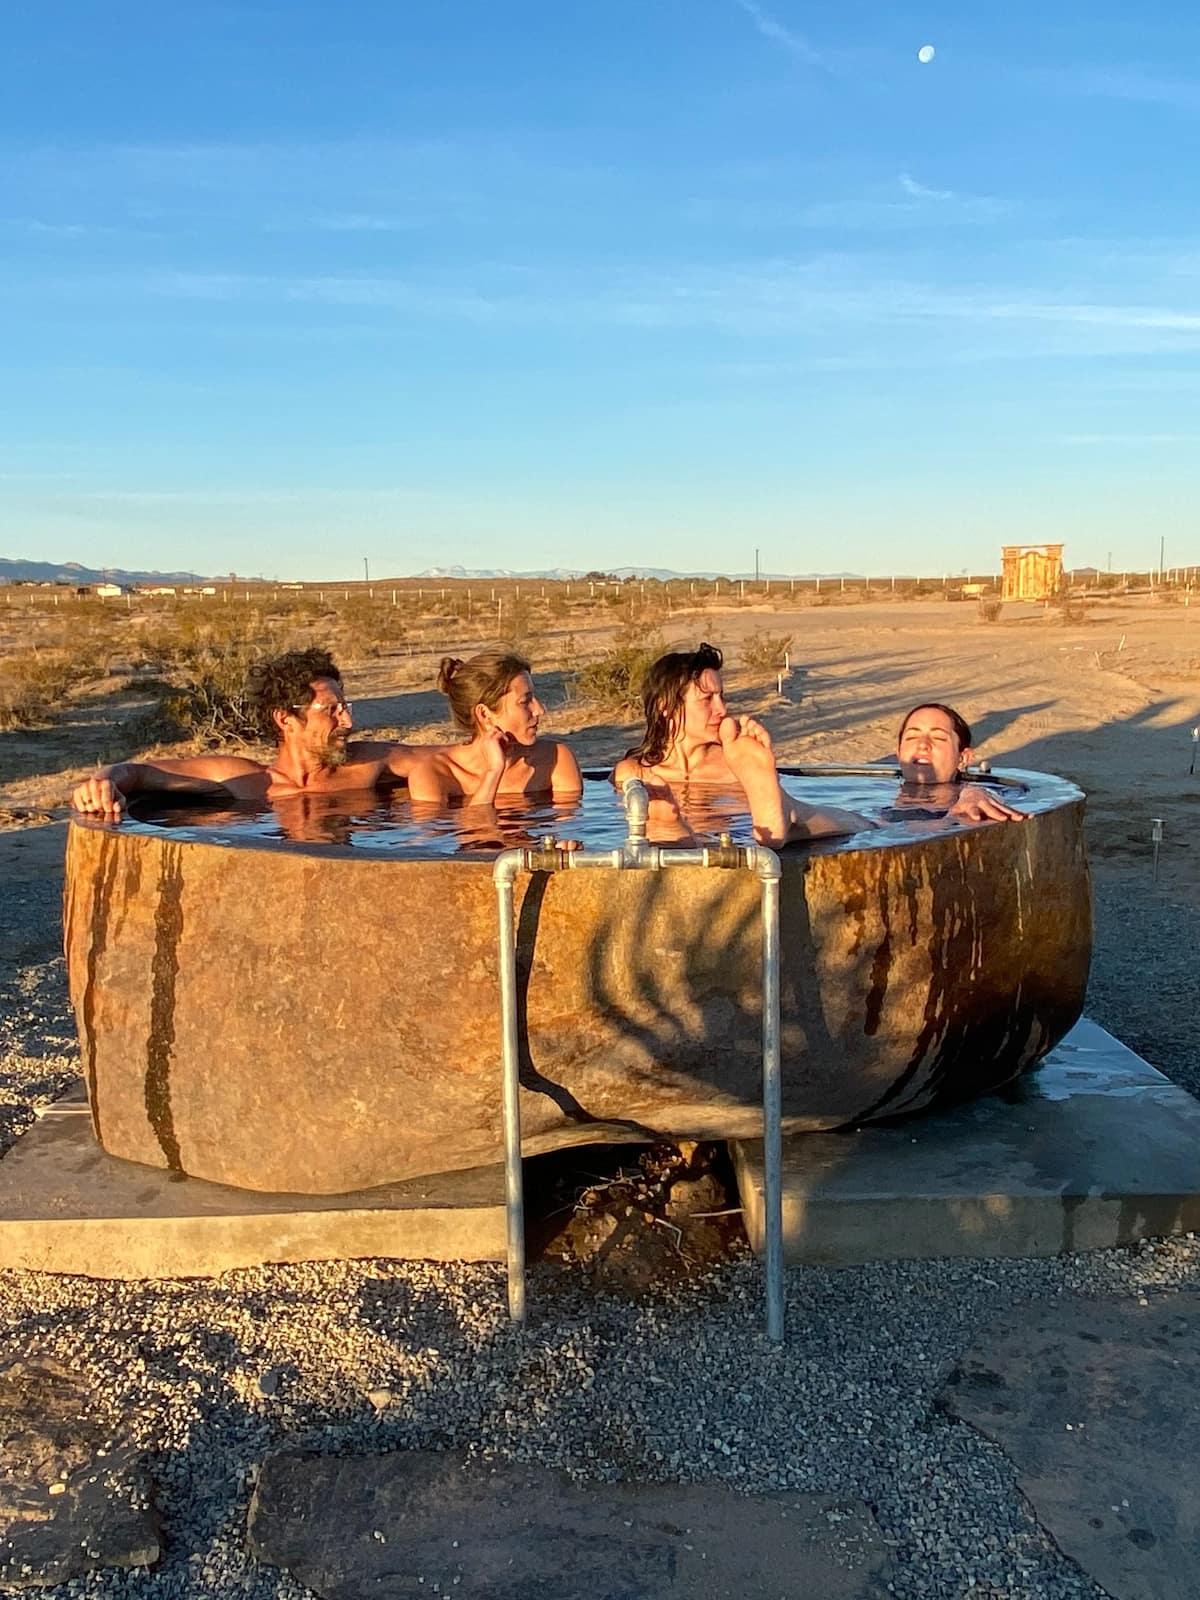 Hot springs soaking in a tub